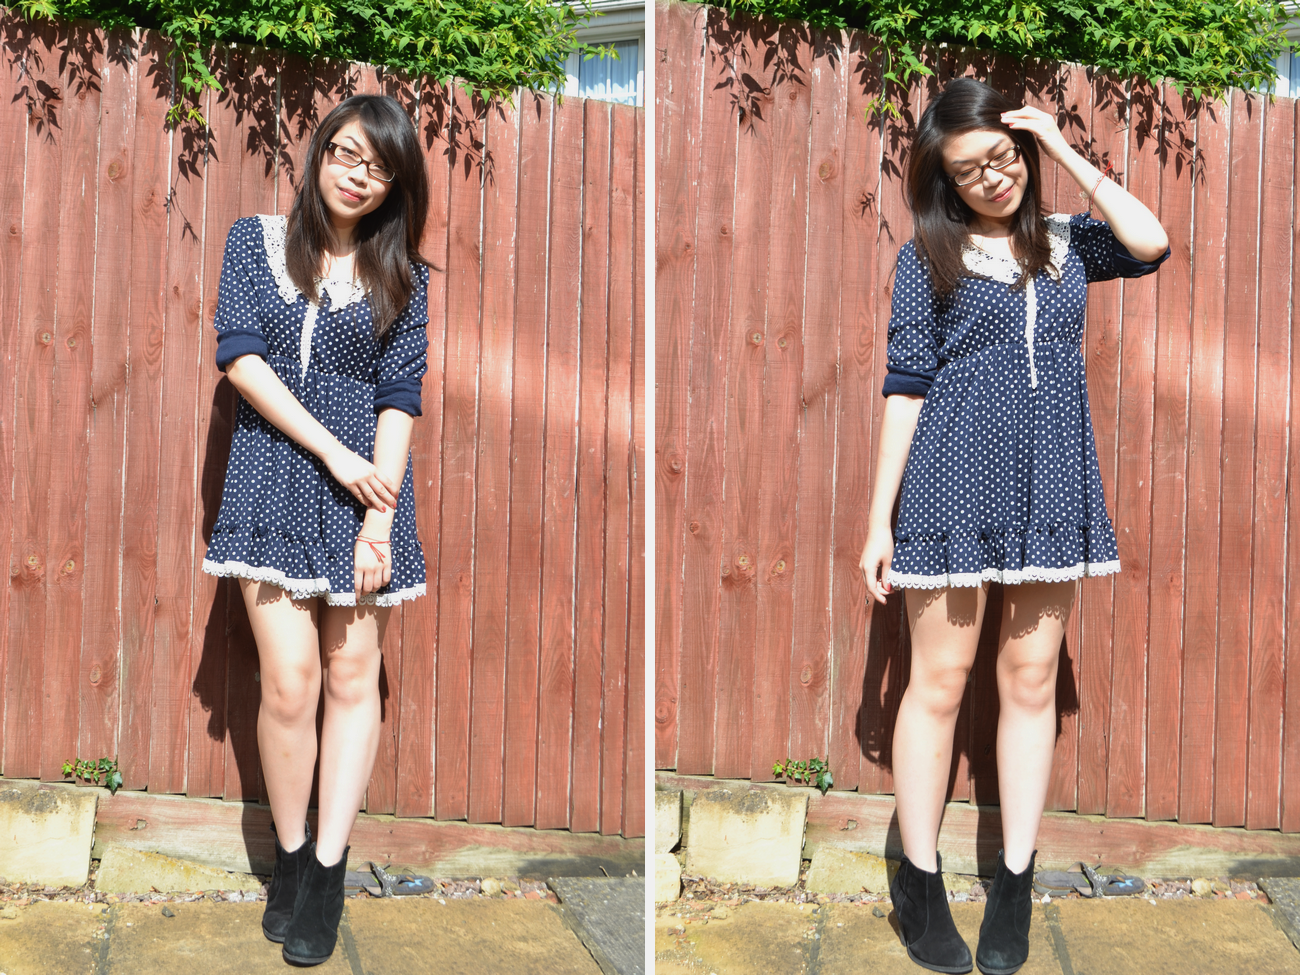 daisybutter - UK Style and Fashion Blog: what i wore, ootd, wiwt, lookbook, polka dots, SS12, ever ours, asos aggie boots, isabel marant dicker boots